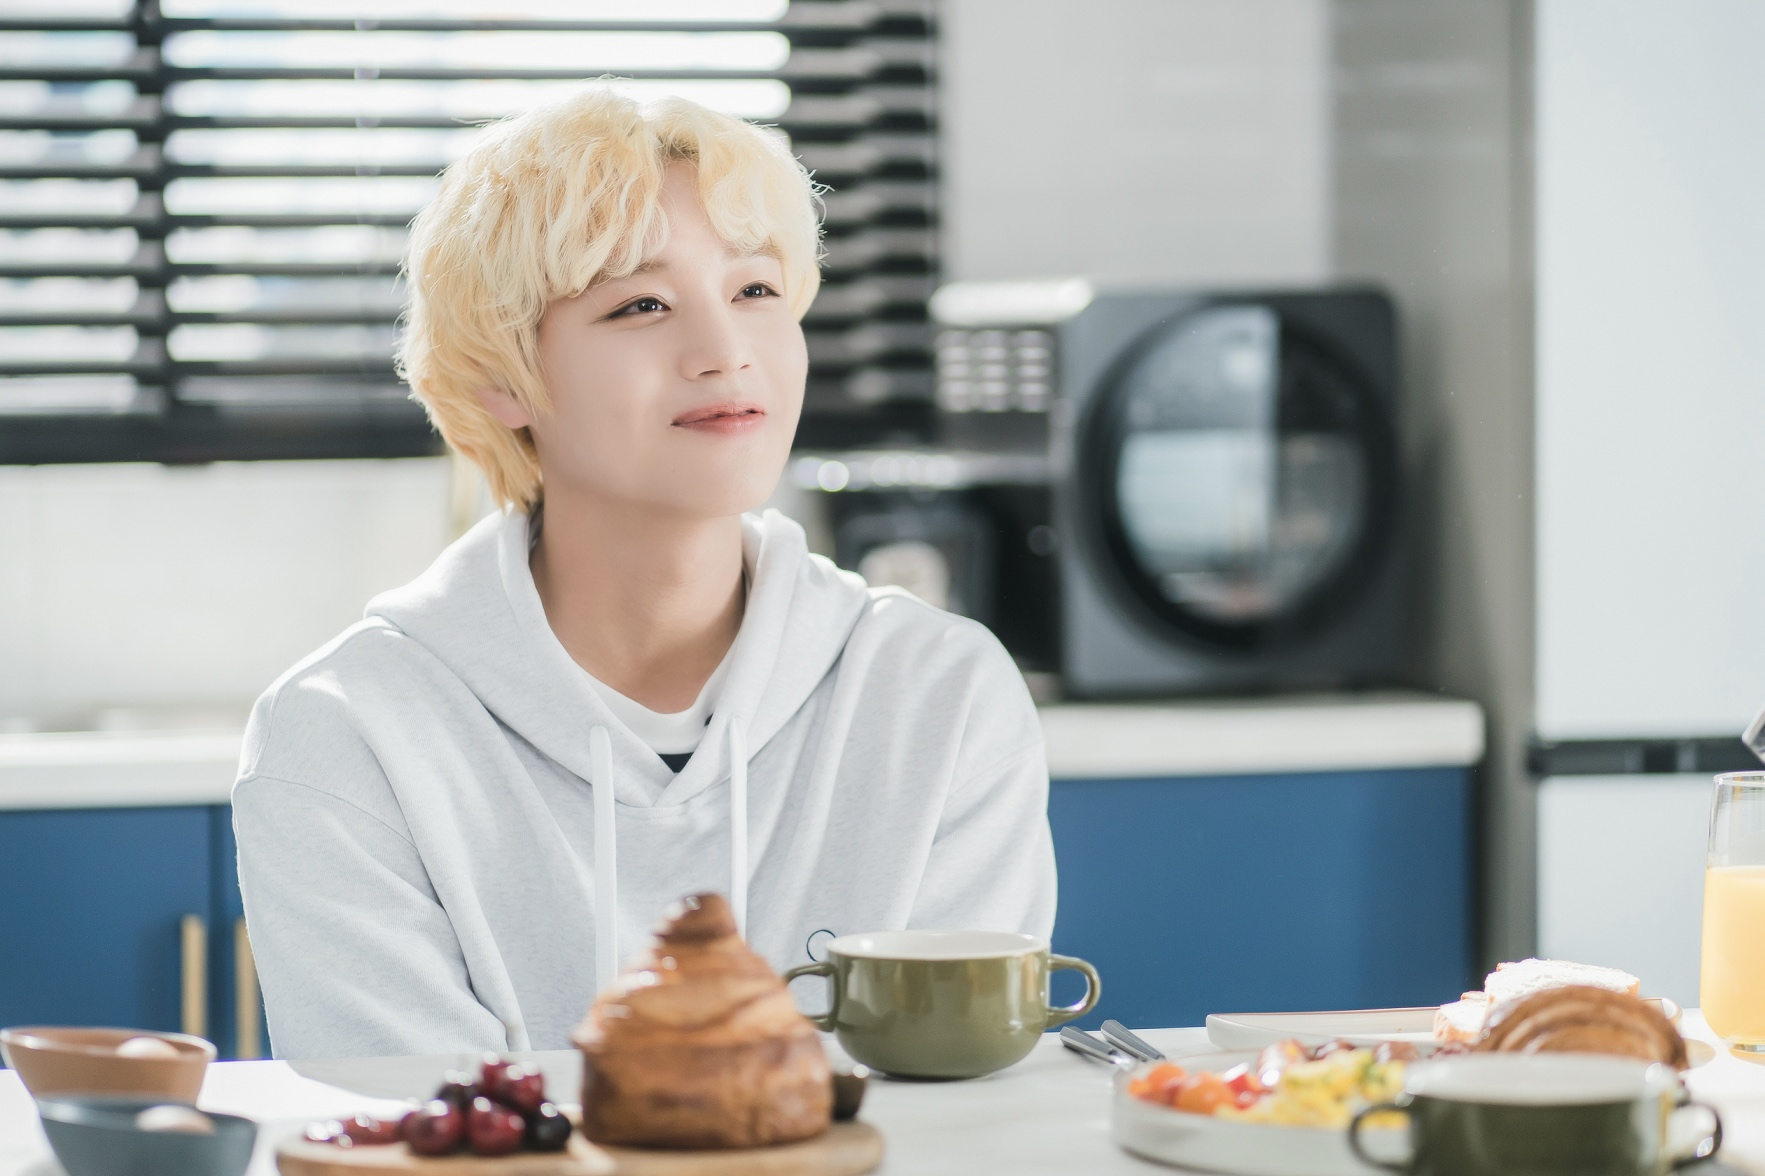 Park Ji Hoon Opens Up About His Role In 'At A Distance, Spring Is Green'